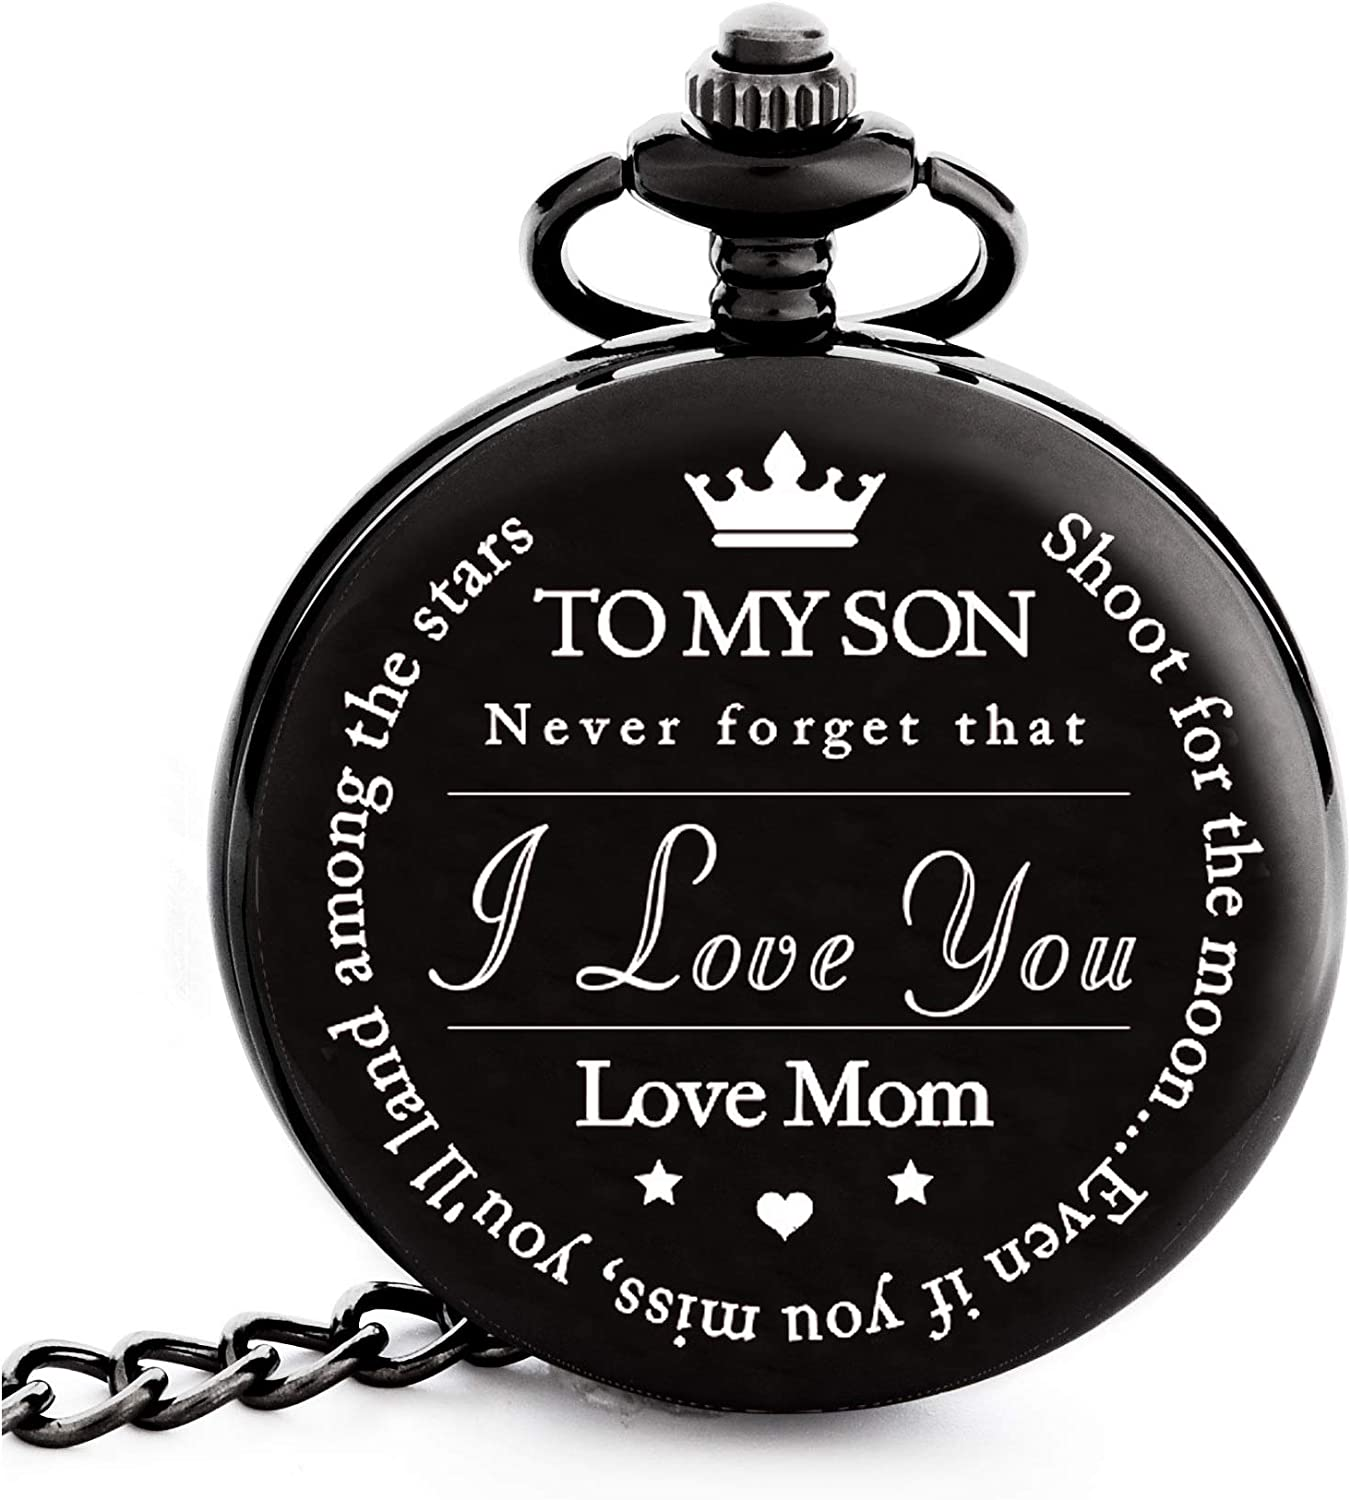 To My Son Mother and Son Graduation 2019 Gift – Engraved To My Son Love Mom Pocket Watch – Perfect Gifts for Son from Mom for Christmas, Valentines Day, Birthday